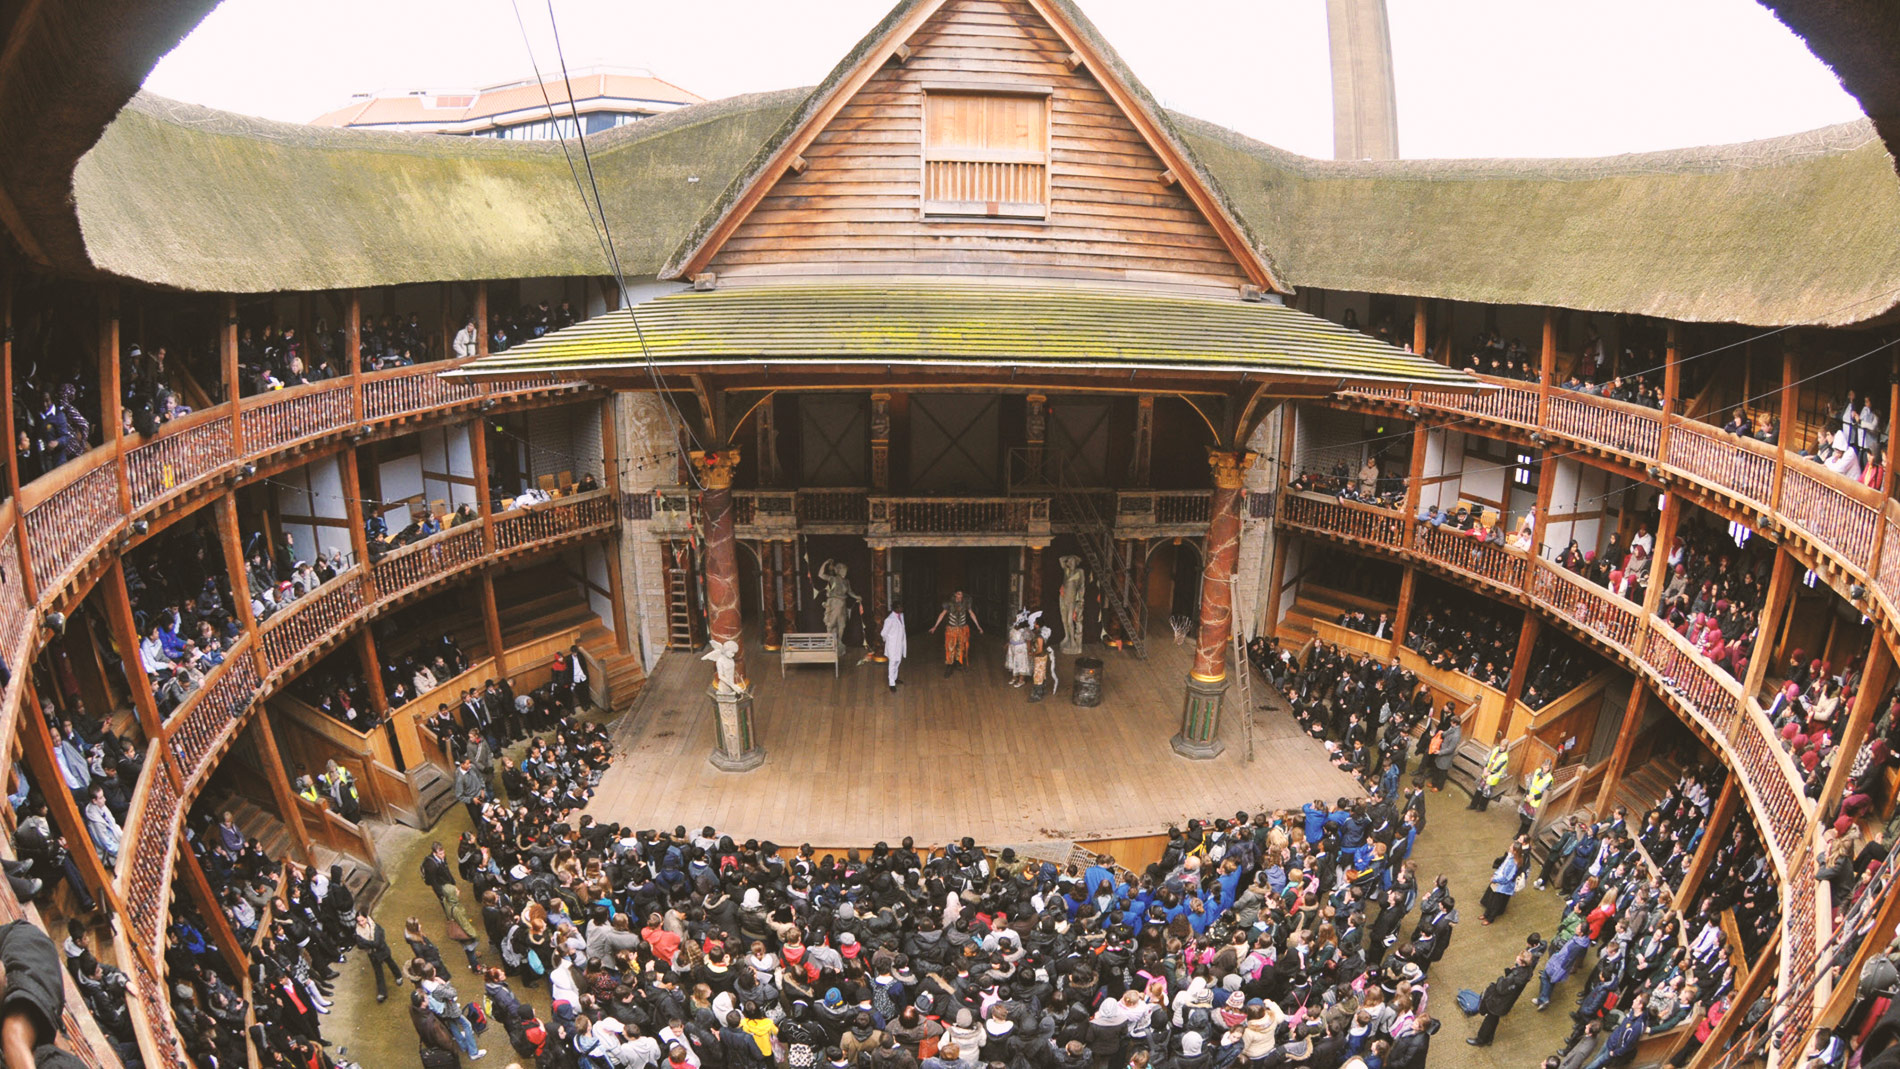 an analysis of the shakespeares organization and the plays in the globe theater Shakespeare's professional acting career: of 36 plays by william shakespeare and they are all new productions at the globe theater and a huge.